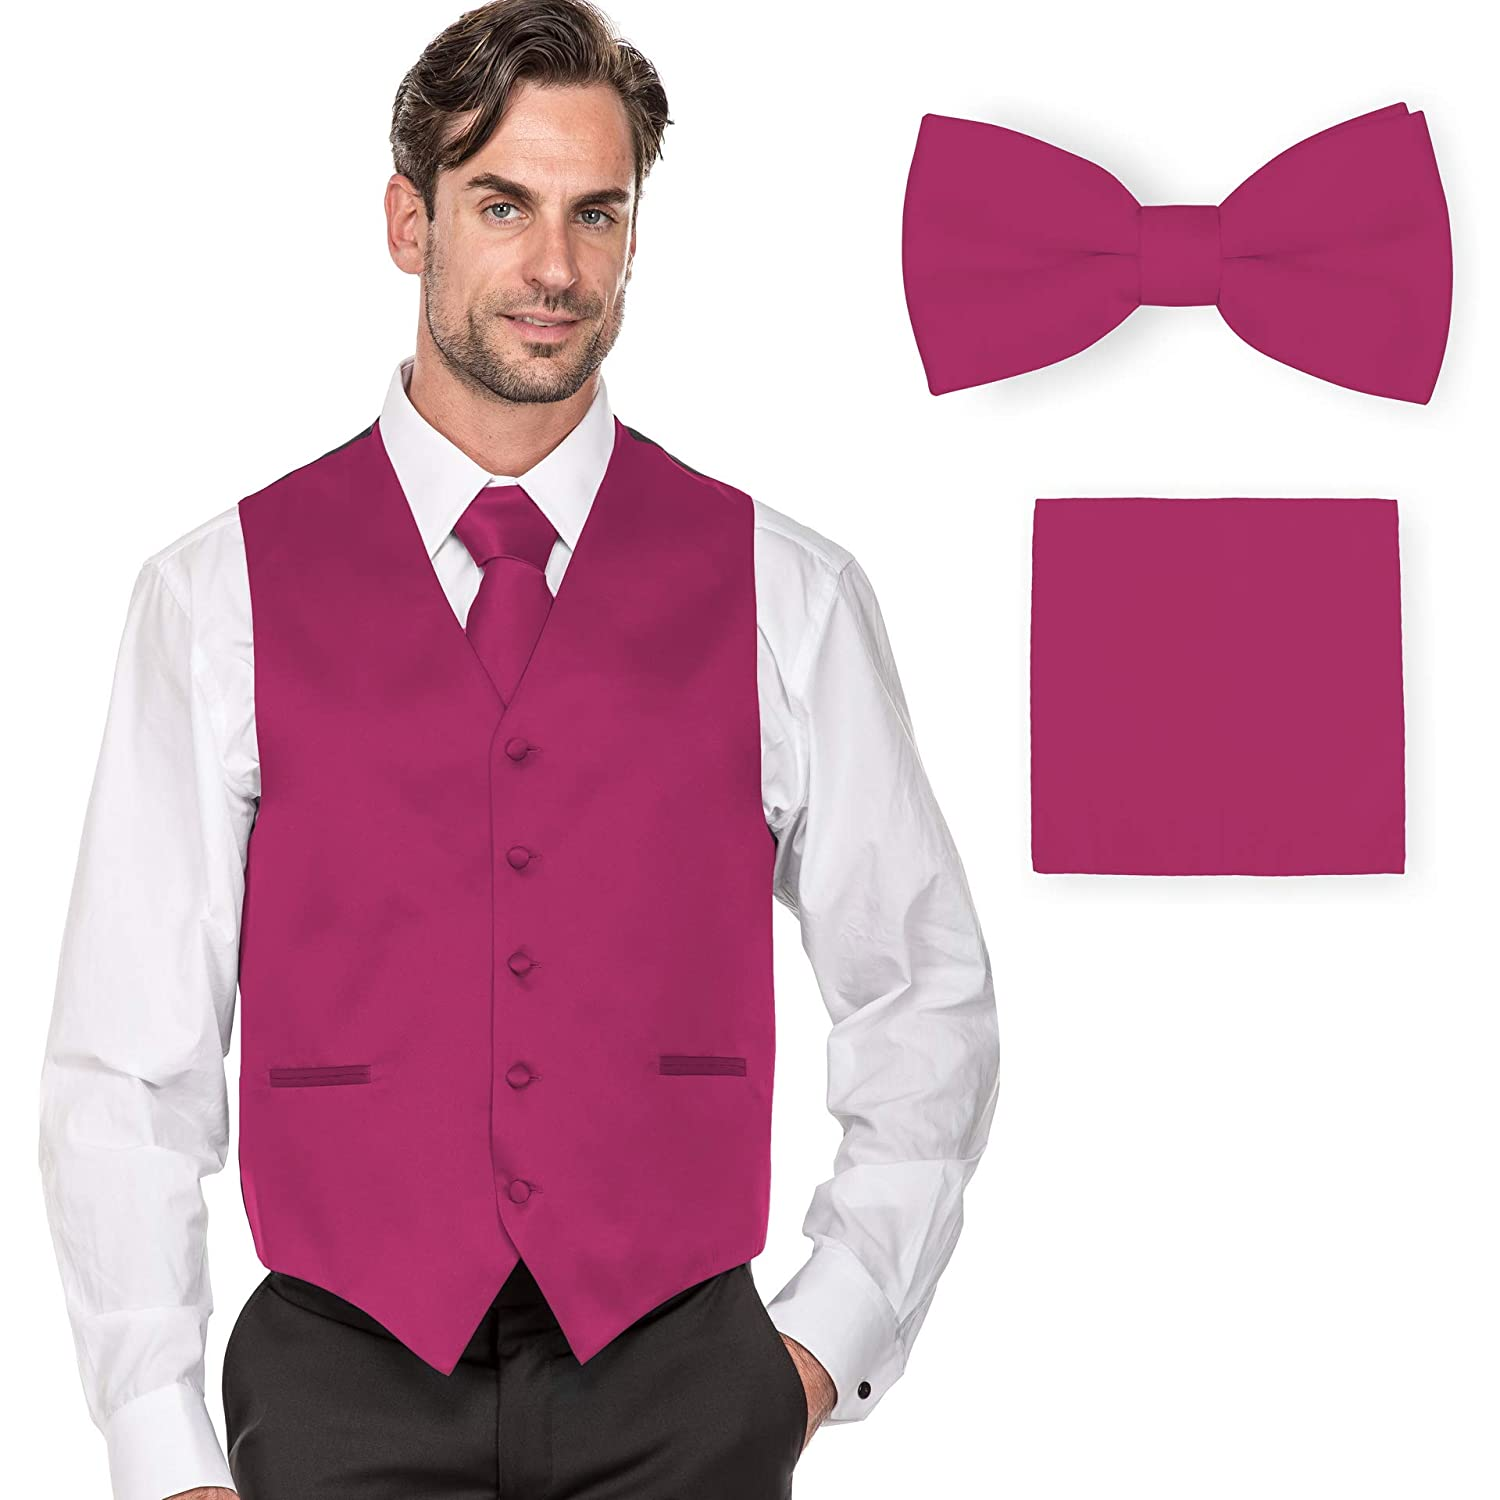 40dd13a962a7 MILANO VICHEE Men's Plain Color Tuxedo Vest (4Pcs Set Vest+Tie+Hanky+Bowtie)  at Amazon Men's Clothing store: